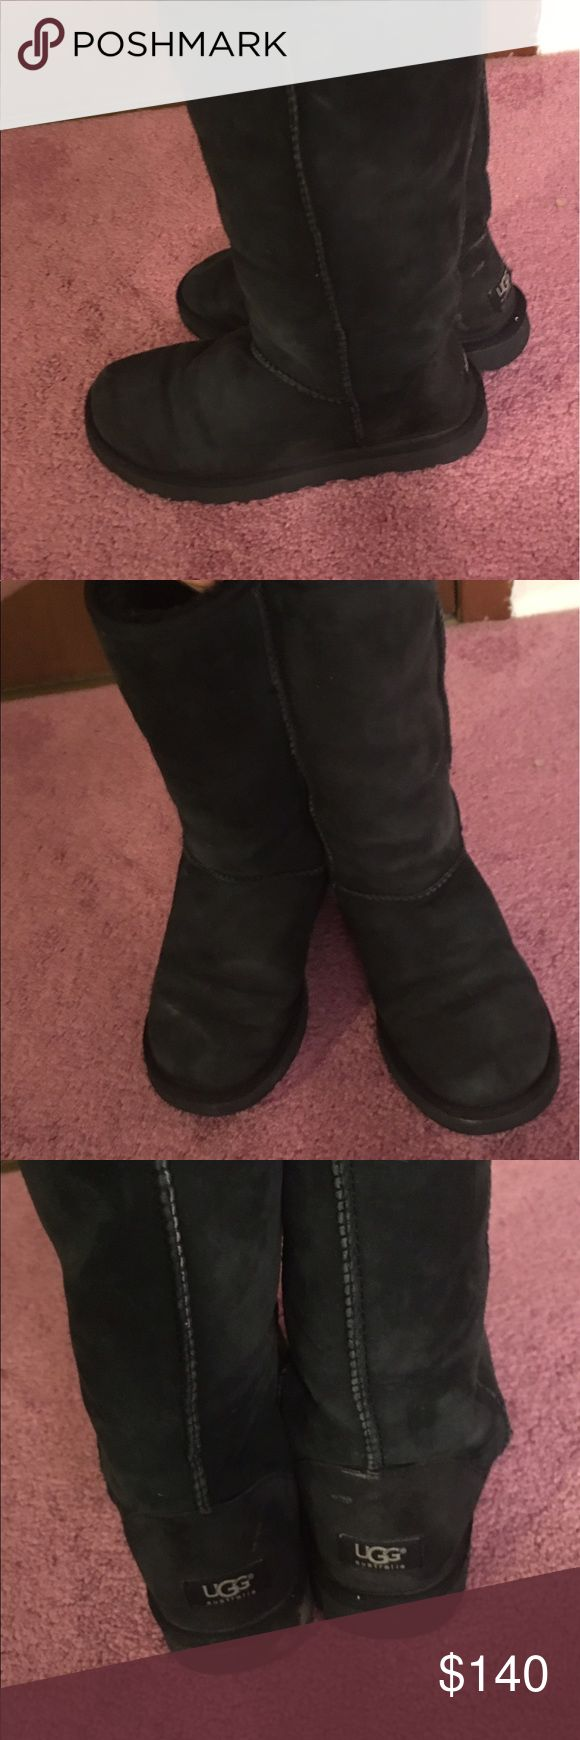 Women's Ugg boots Black authentic Tall UGG boots from UGG Australia. Gently used, in great condition. Incredibly soft and comfortable with great support for your feet. Perfect for Fall and Winter! UGG Shoes Winter & Rain Boots